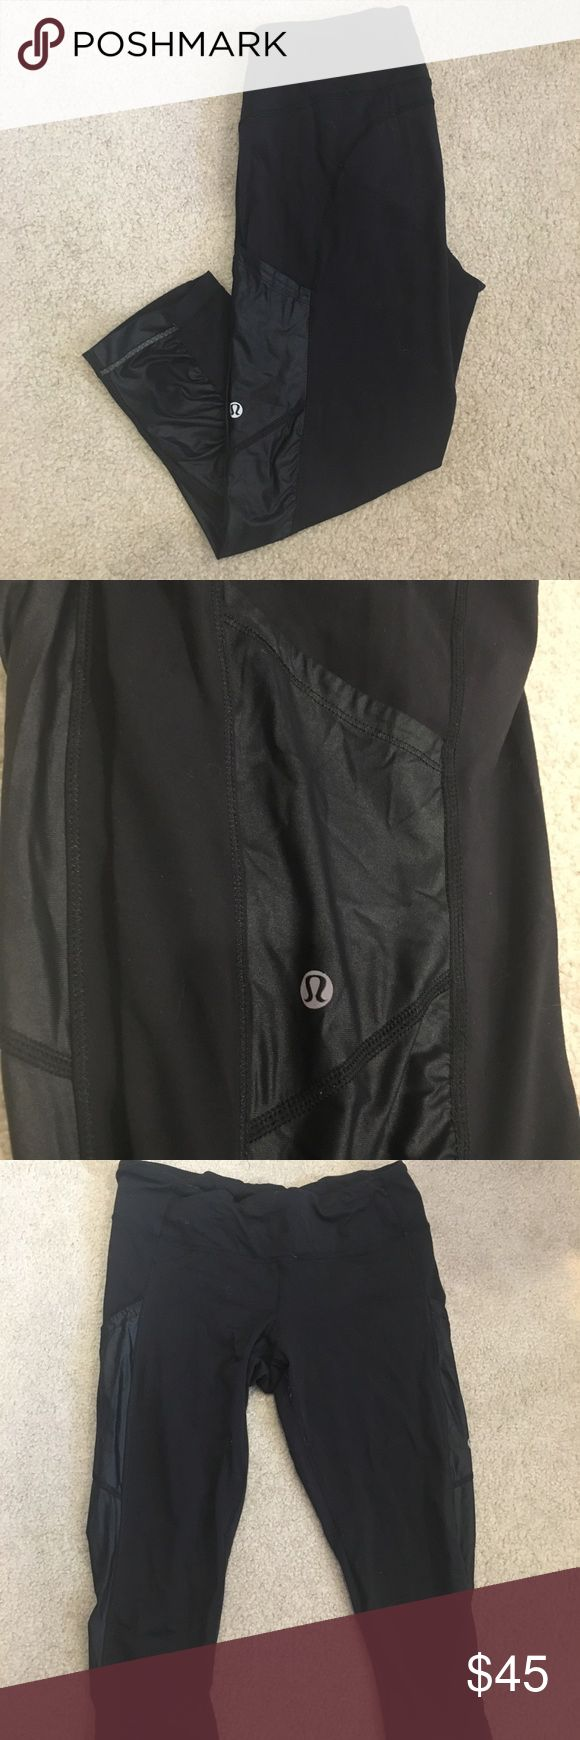 """Lululemon Black Capri Leggings with pockets! Very good condition.  Size 8 in Lululemon  I'm 5.3"""" and they go a little lower than my knees Pockets on the sides are really useful!   Just trying to clean out my closet because I have way too many gym clothes. Smoke-free home. lululemon athletica Pants Leggings"""